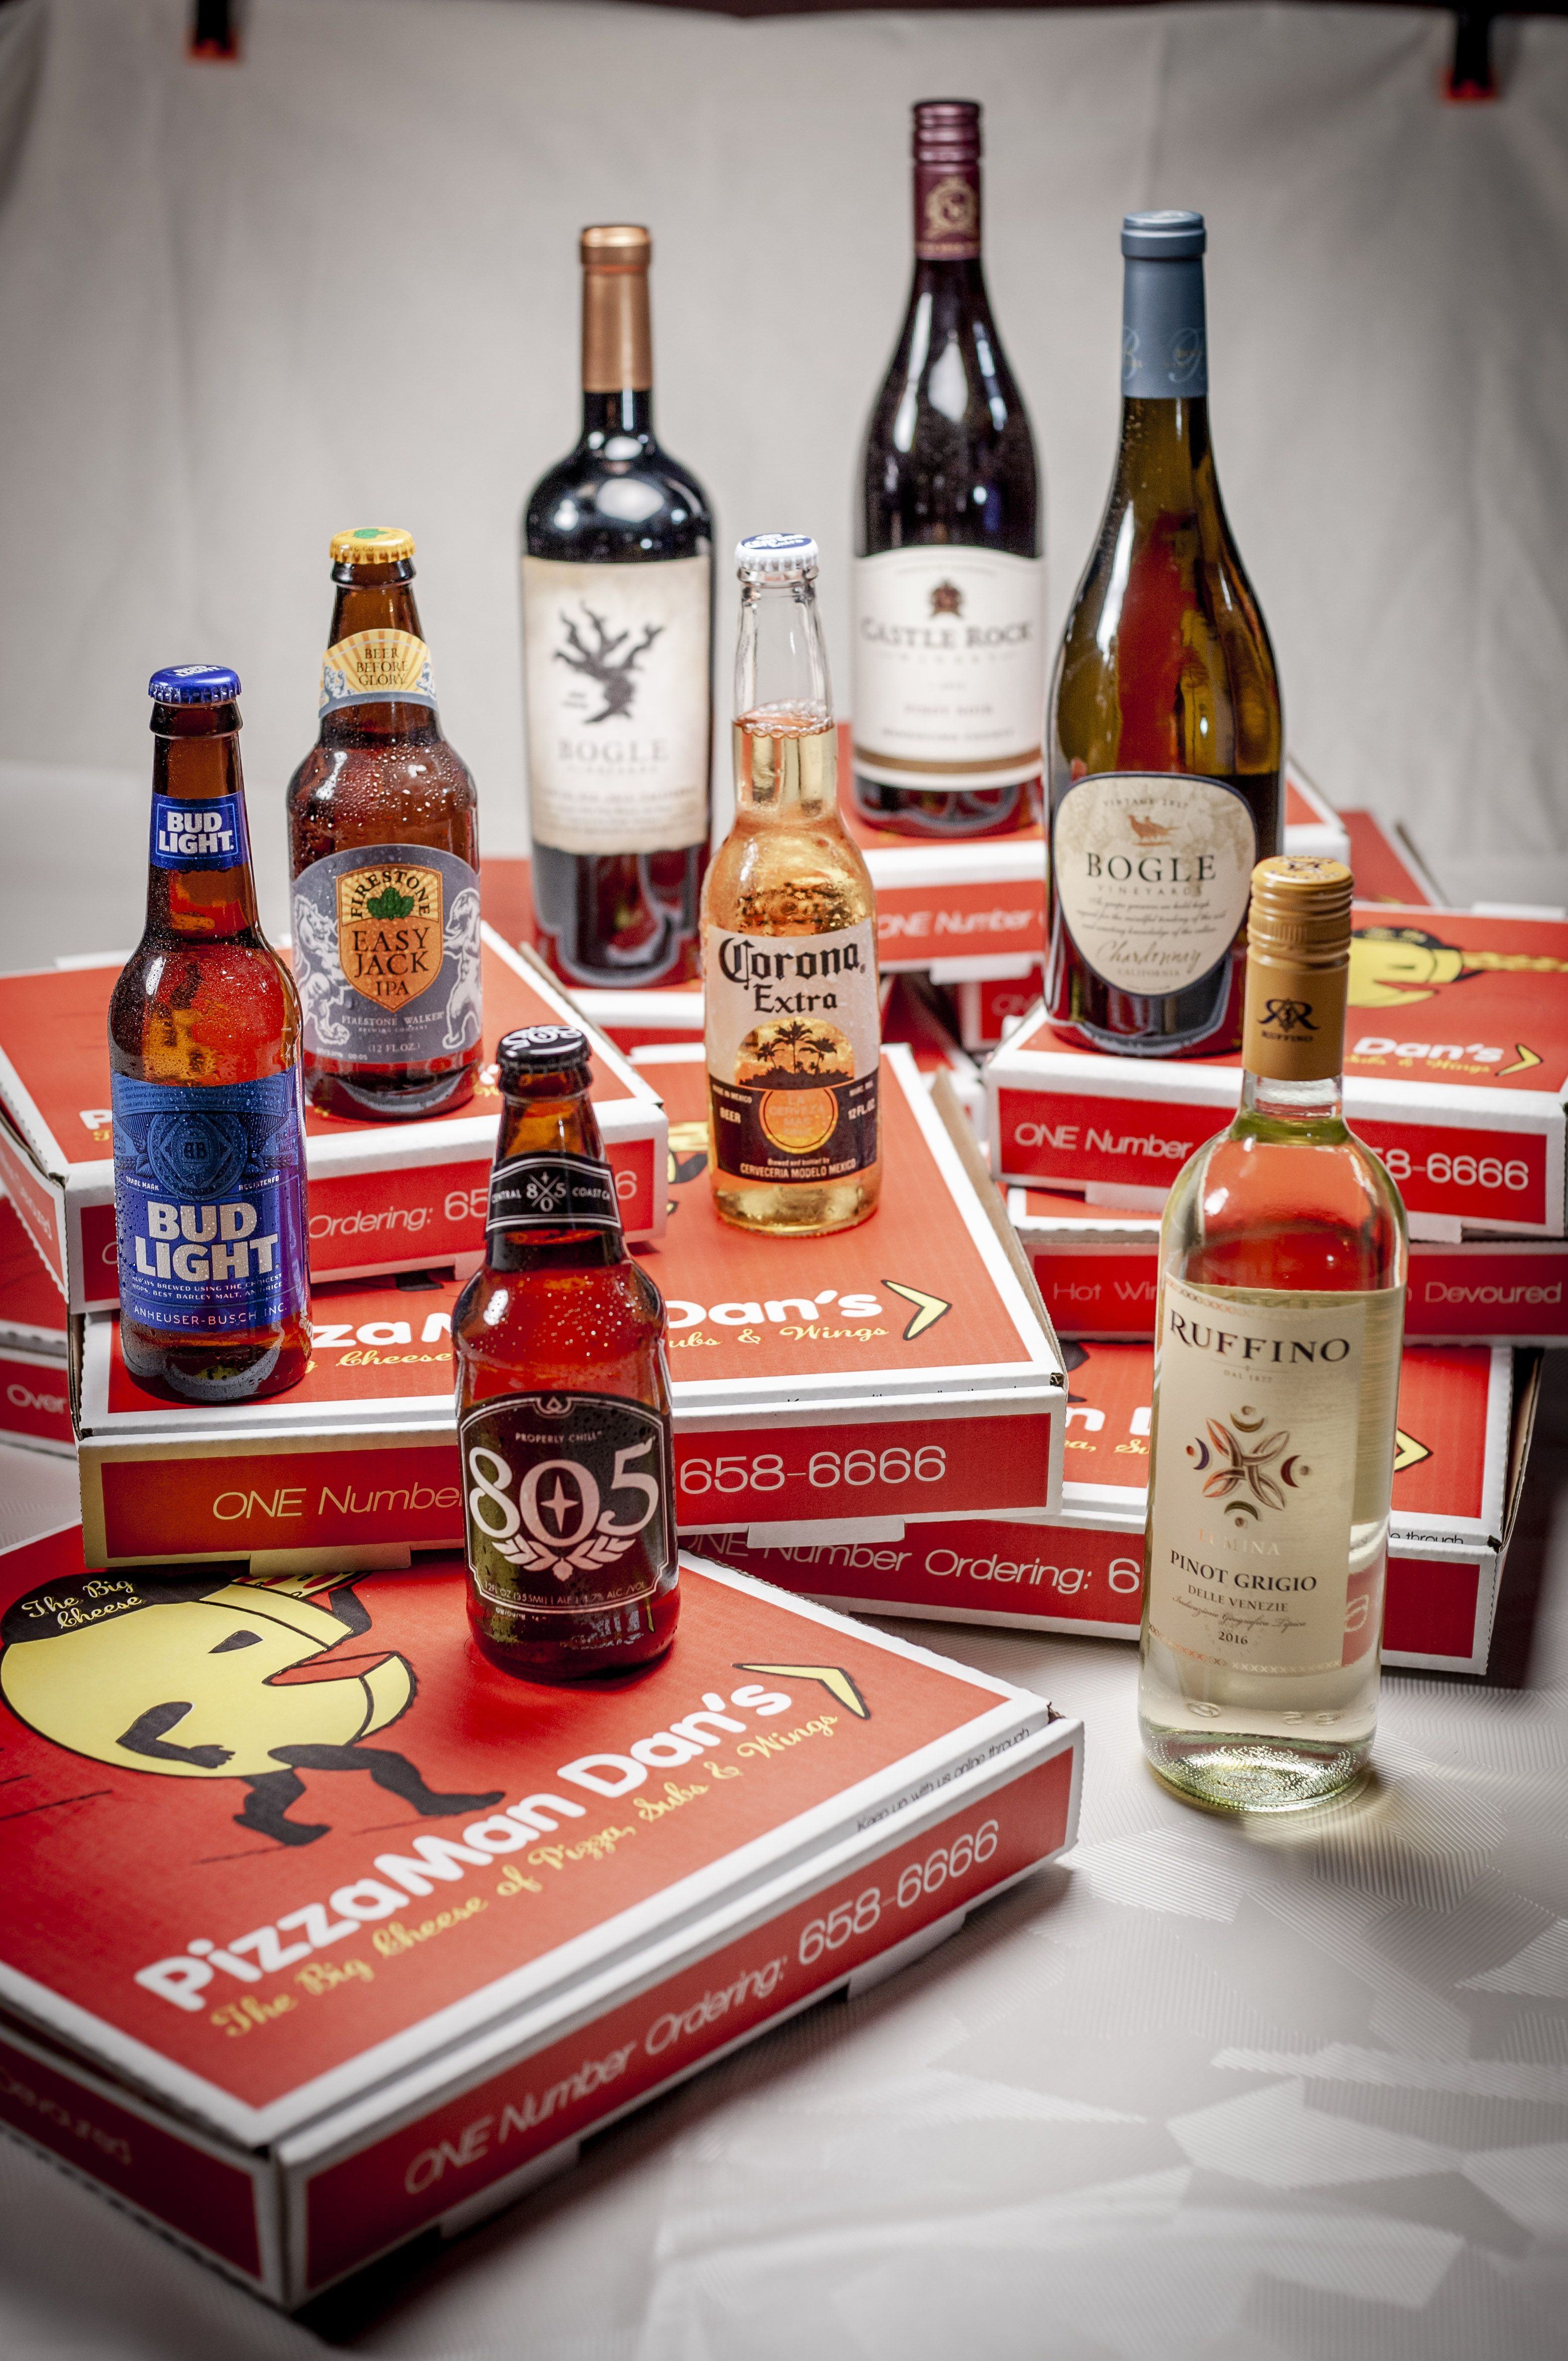 Pizza And Wine Yes Please Pizzamandans Did You Know Pizzaman Dan S Was The First Pizzeria In California To D Ice Cold Beer Favourite Pizza Wine Delivery